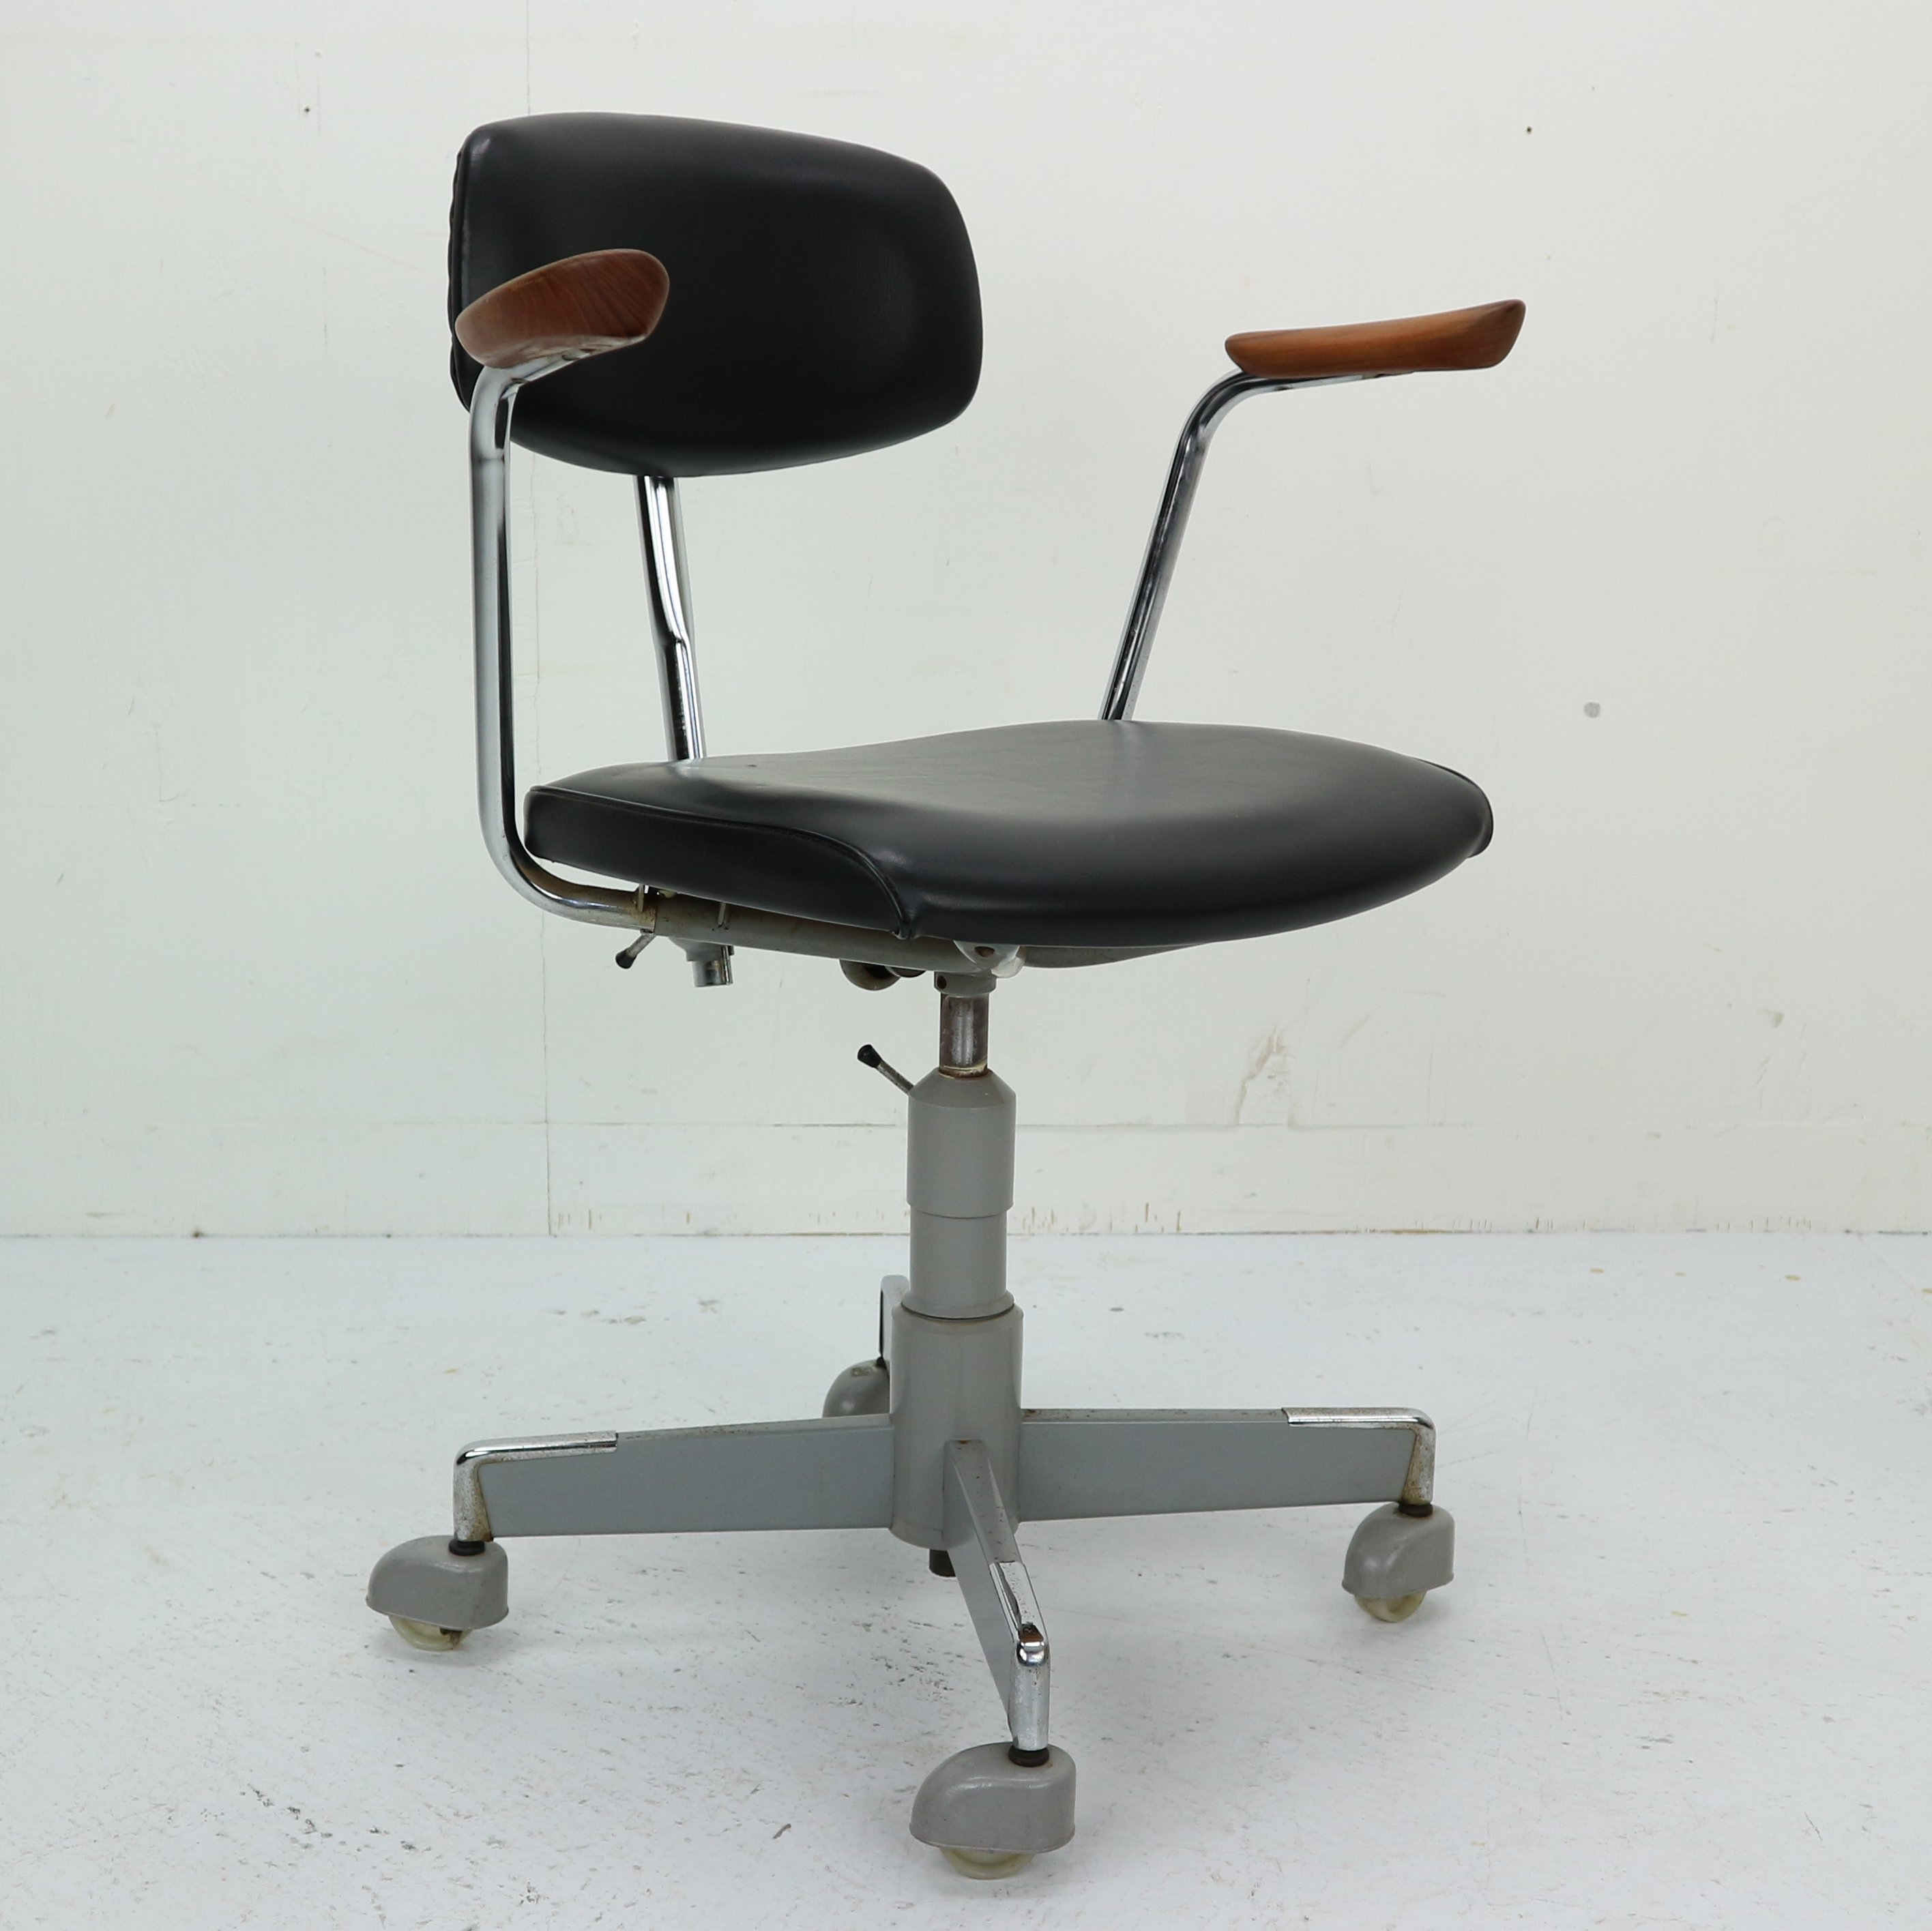 Brilliant 1960S Black Faux Leather Office Chair By Hag Norway 103408 Machost Co Dining Chair Design Ideas Machostcouk